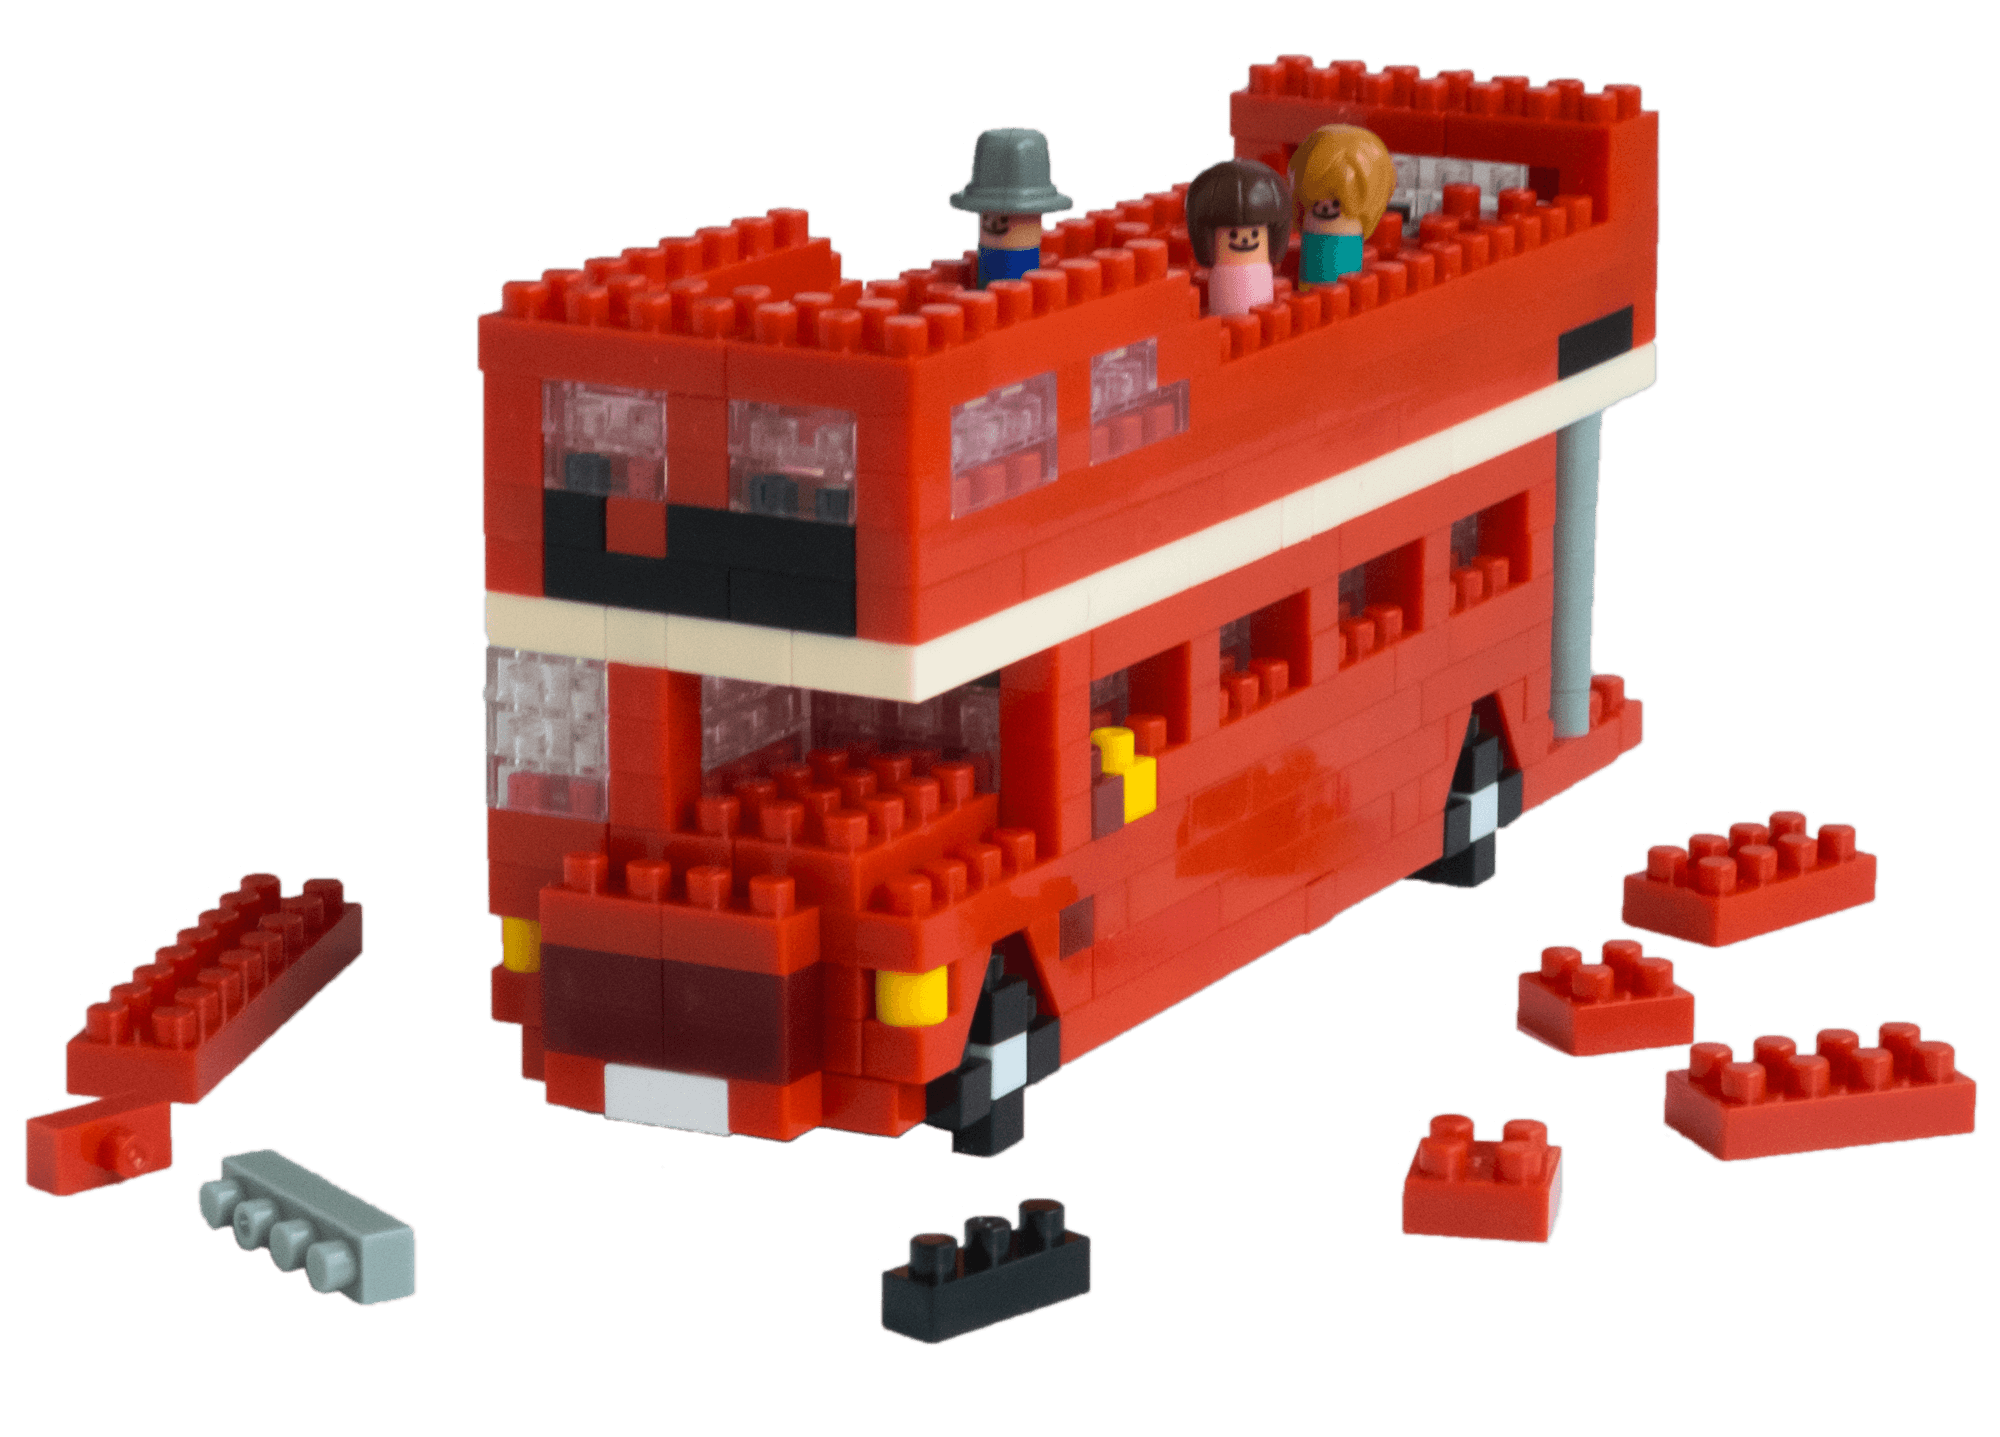 Bus with bricks